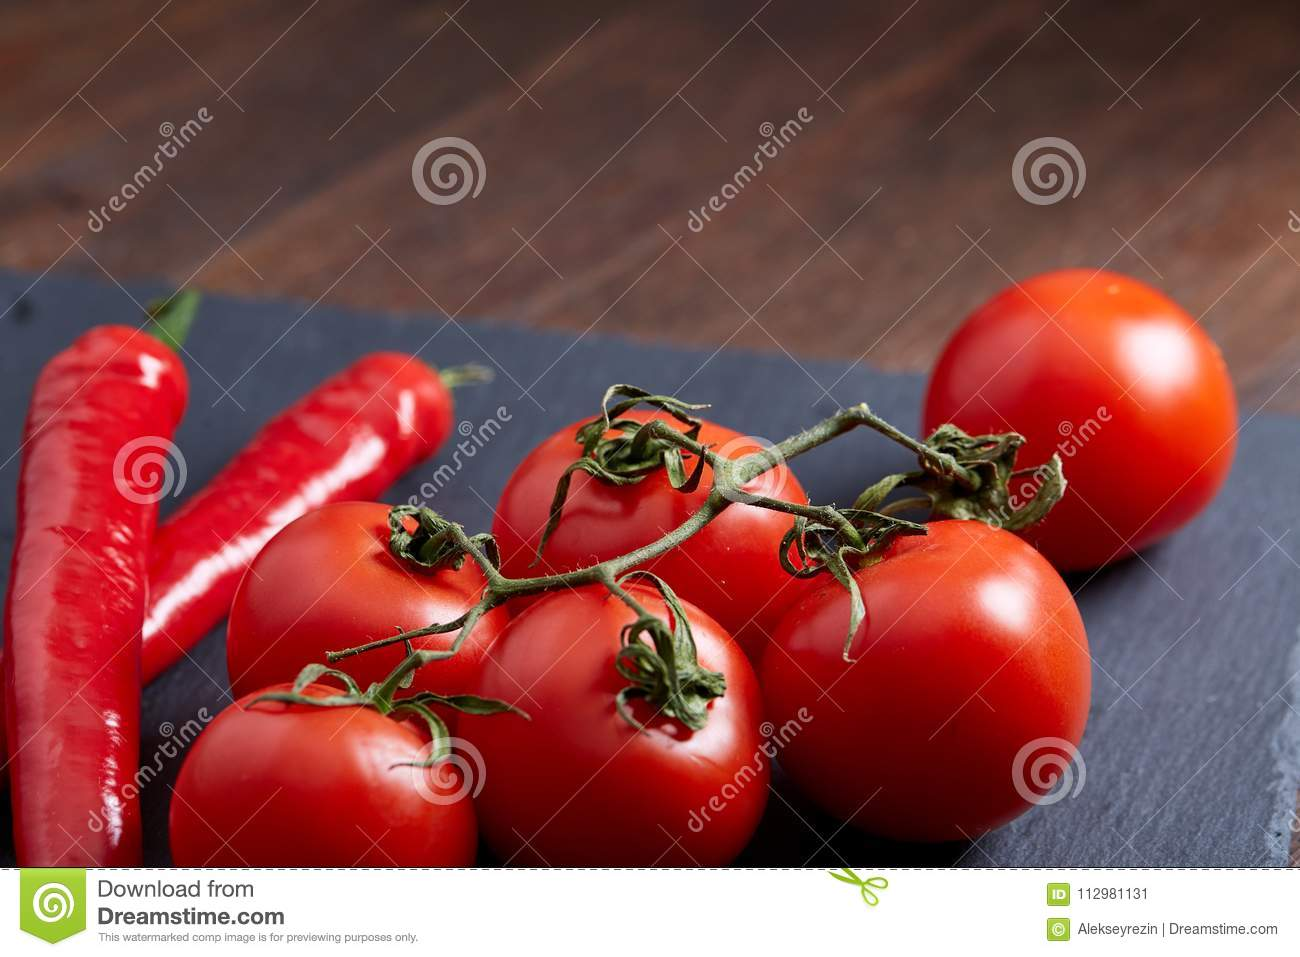 Composition of tomato bunch and hot pepper on black piece of board, top view, close-up.